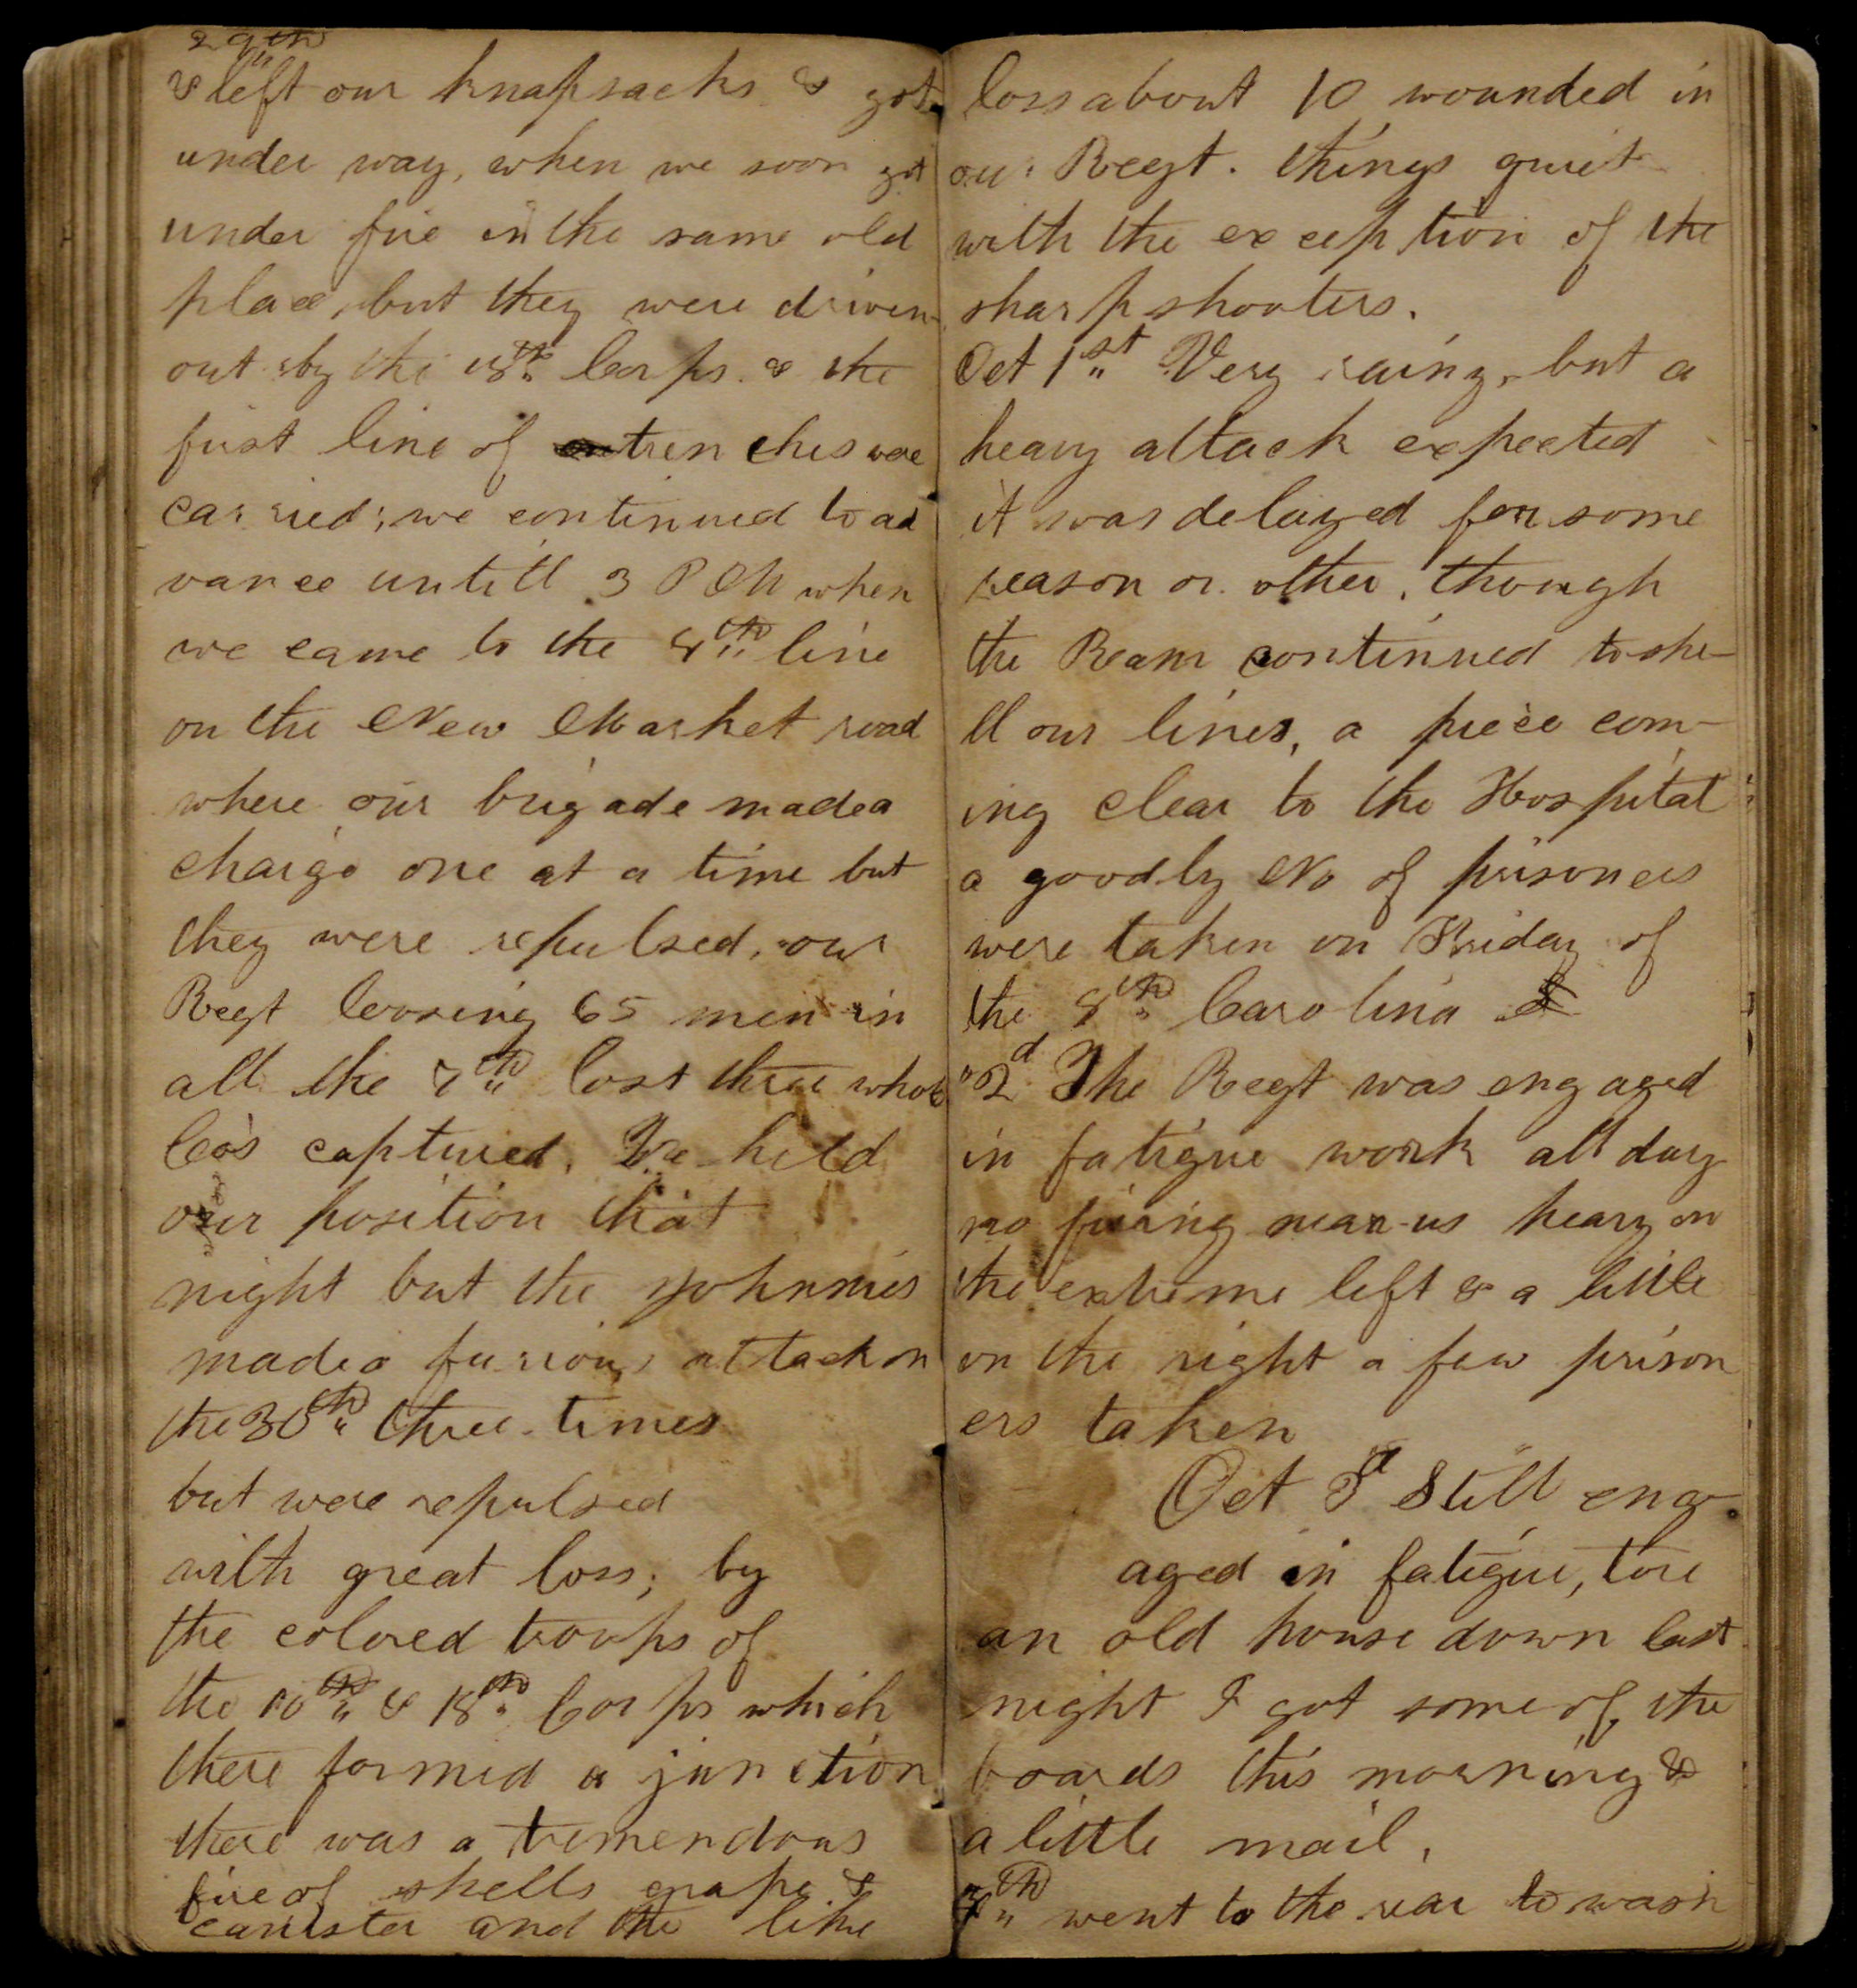 Diary of William Woodlin, an African American soldier in the 8th Regiment United States Colored Troops, Company G (Gilder Lehrman Collection)